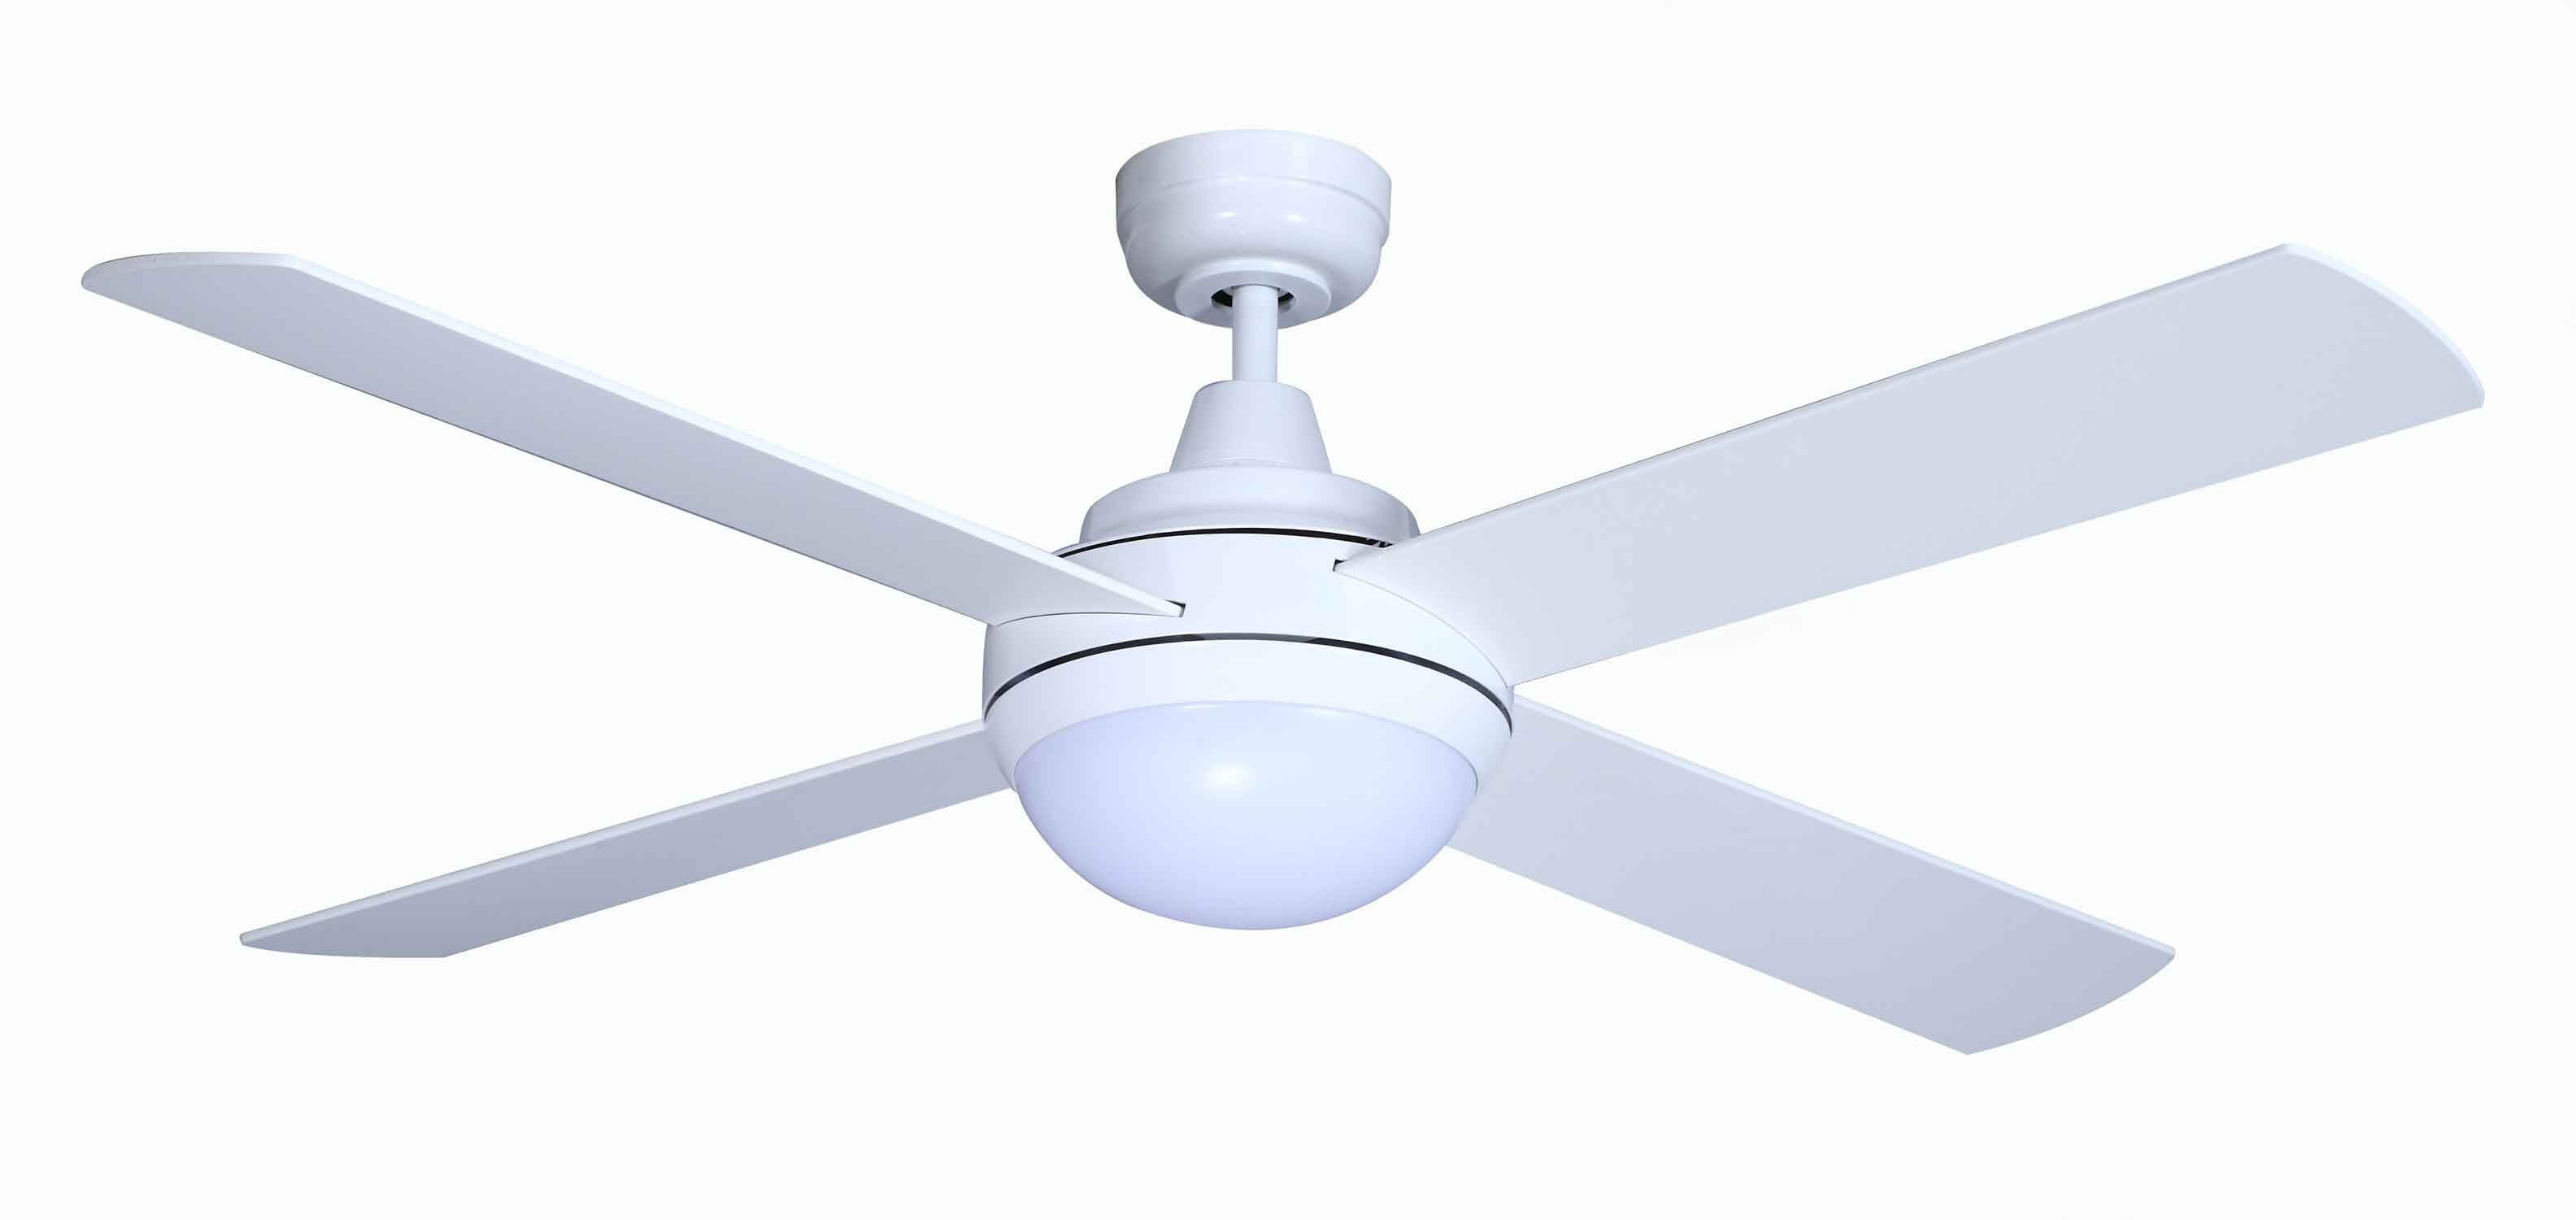 Caprice 1300 Ceiling Fan with B22 Light CEILING FANS